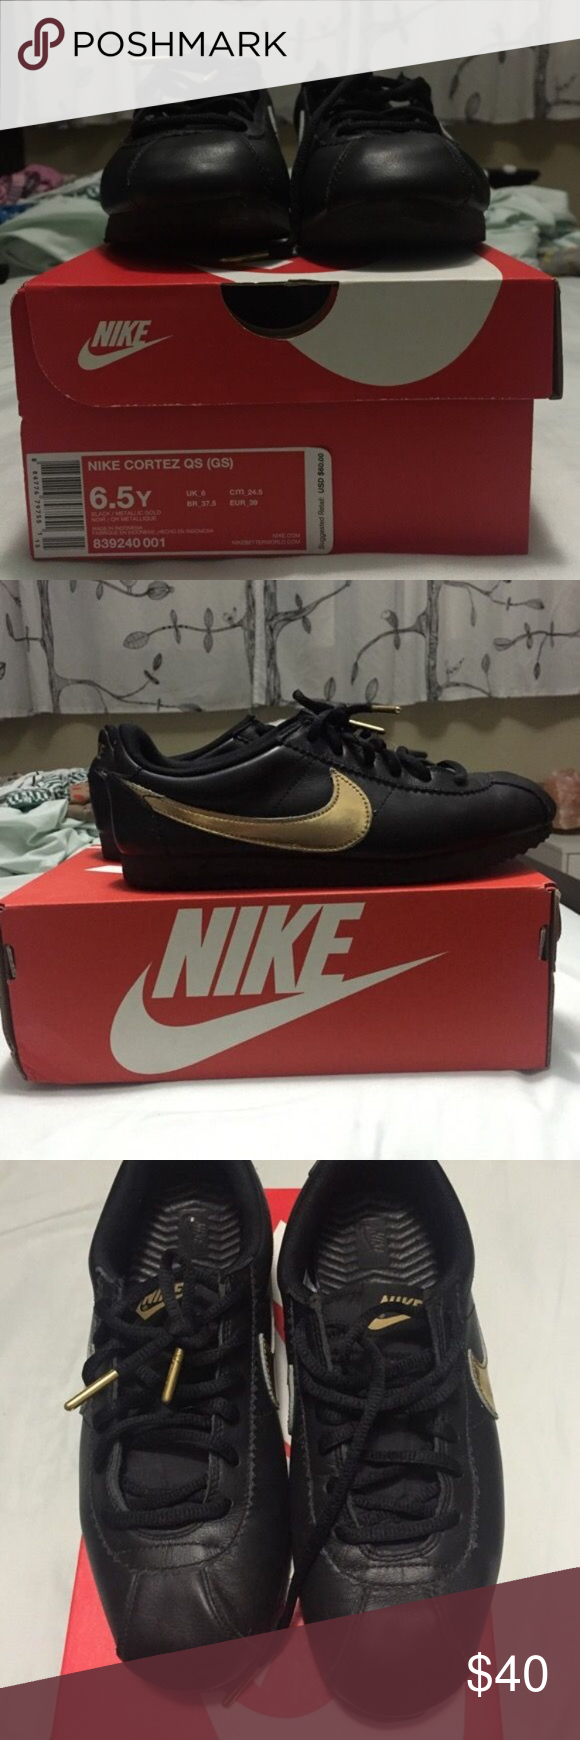 Nike Cortez Black Leather/Gold Pretty great condition, don't fit the same after my pregnancy. Only worn a few times inside my home. Nike Shoes Sneakers